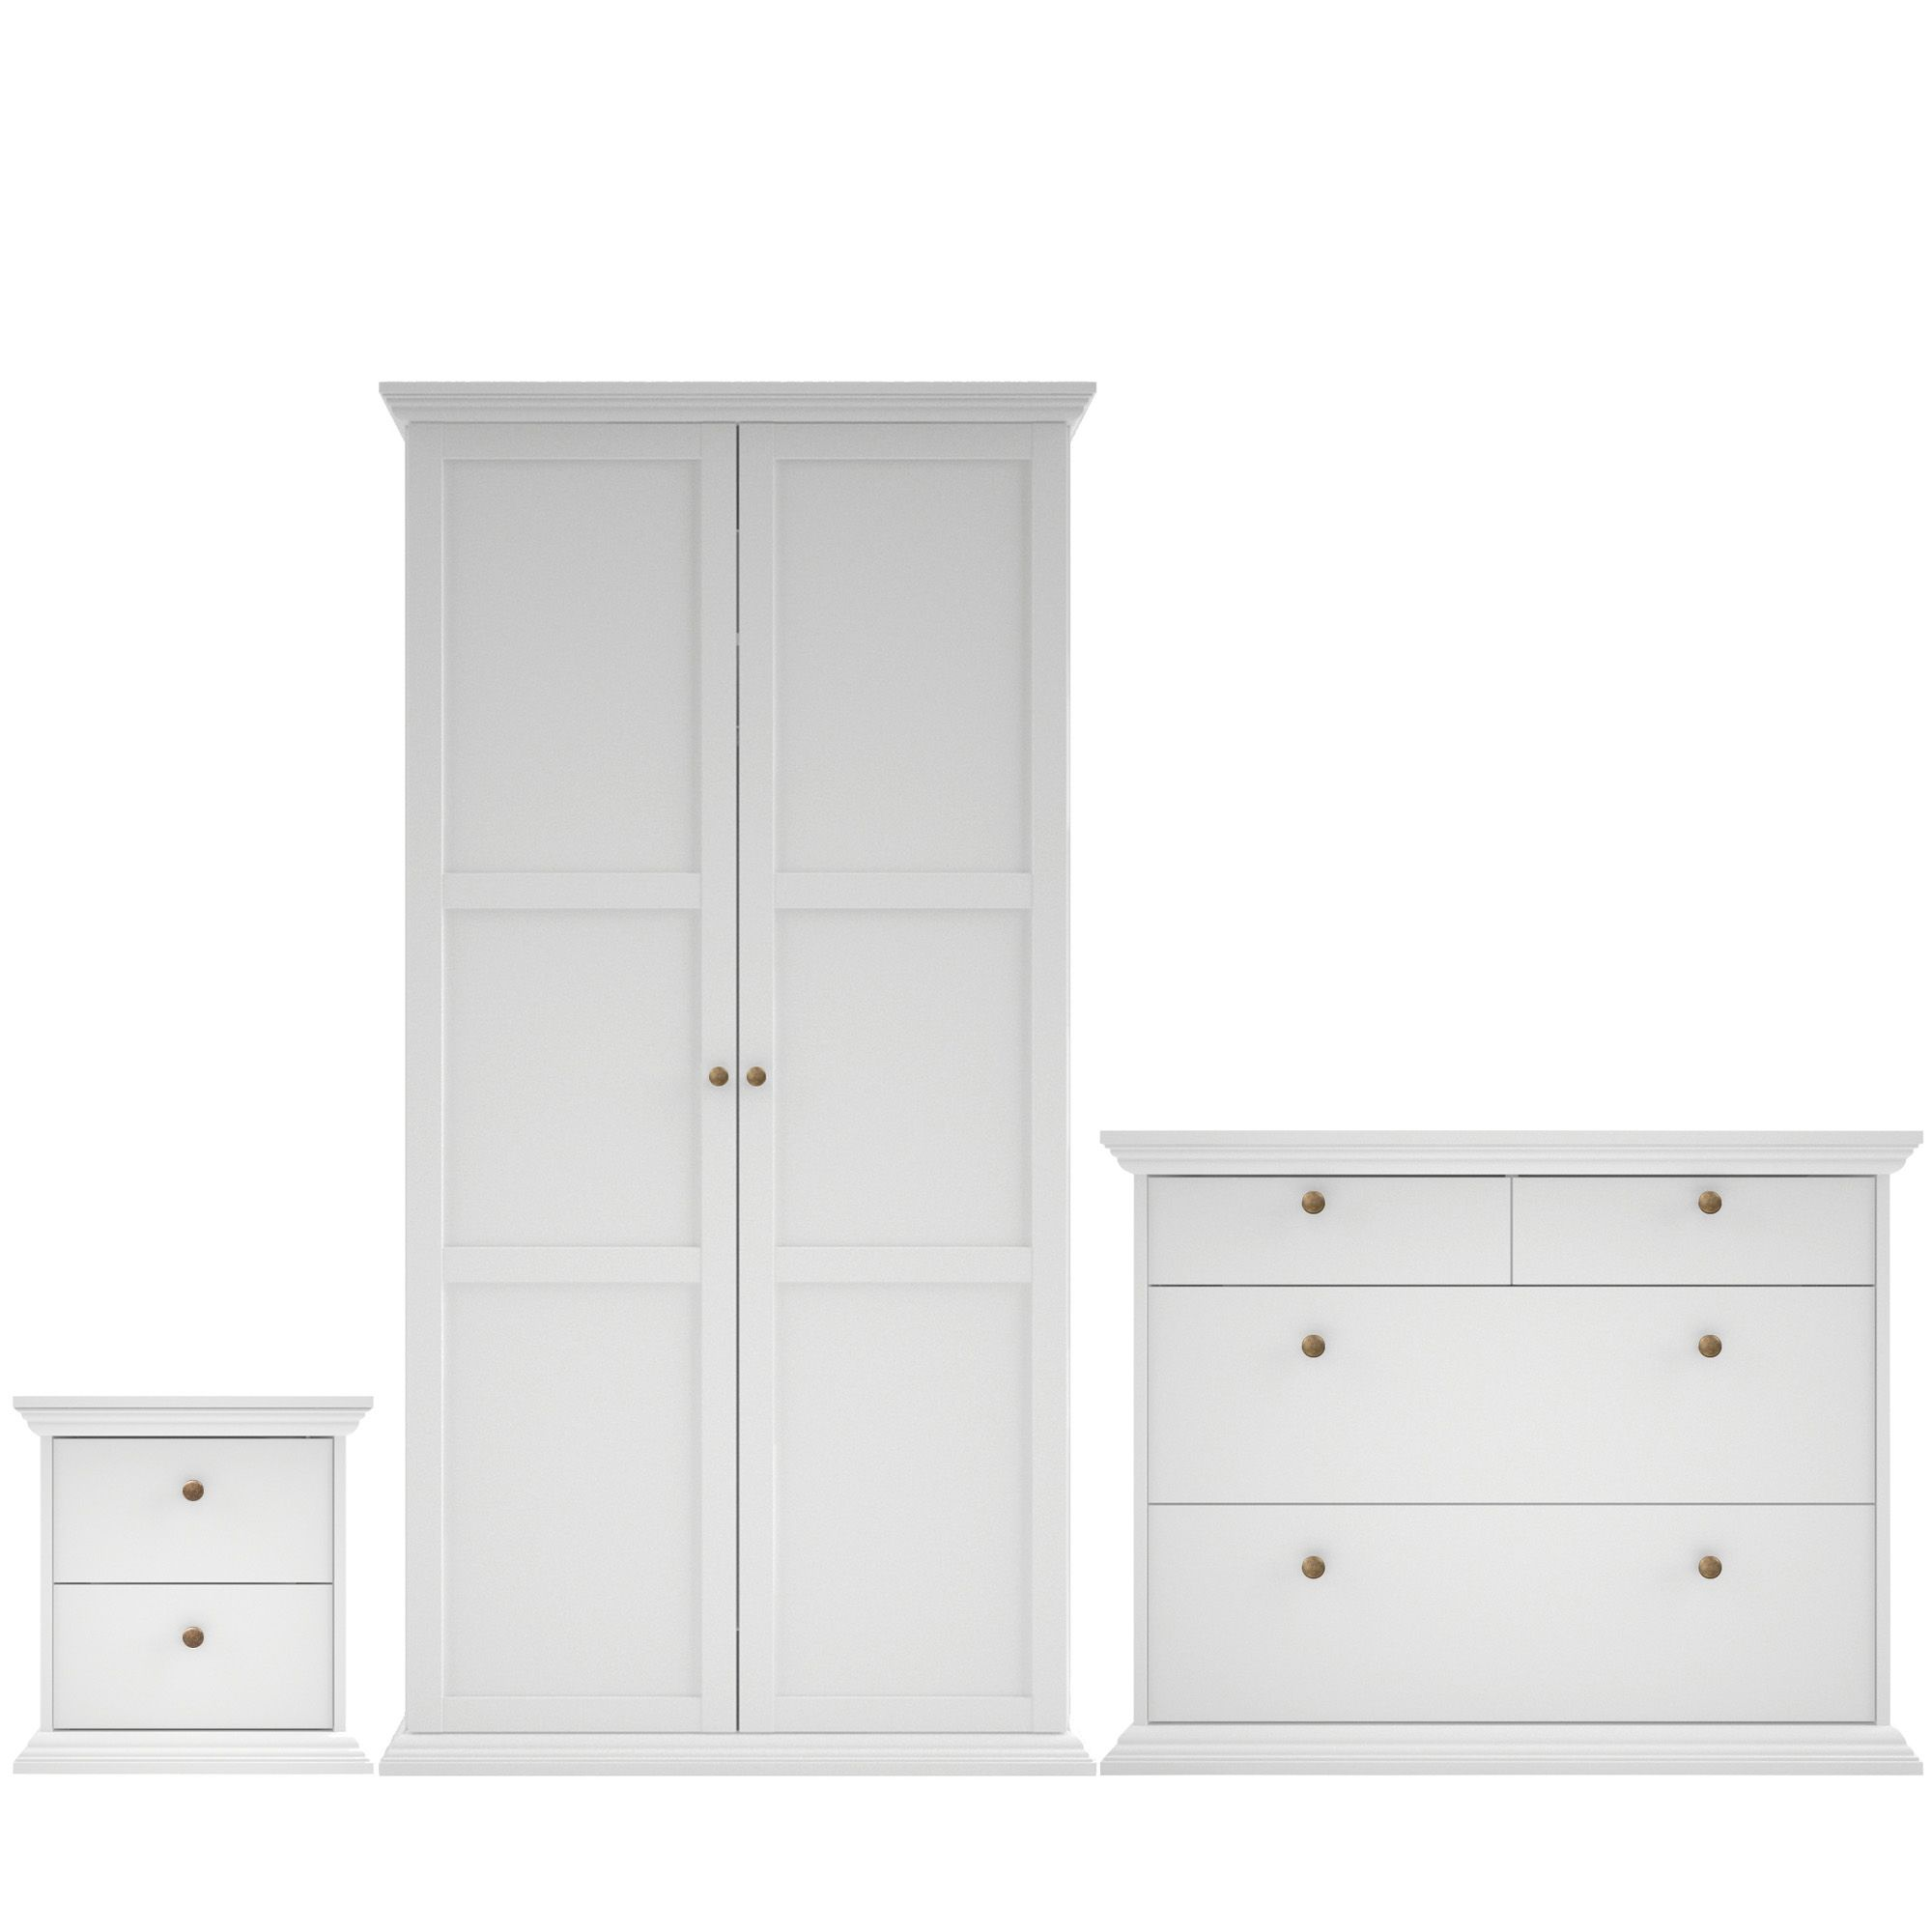 bedroom furniture sets b andq photo - 2